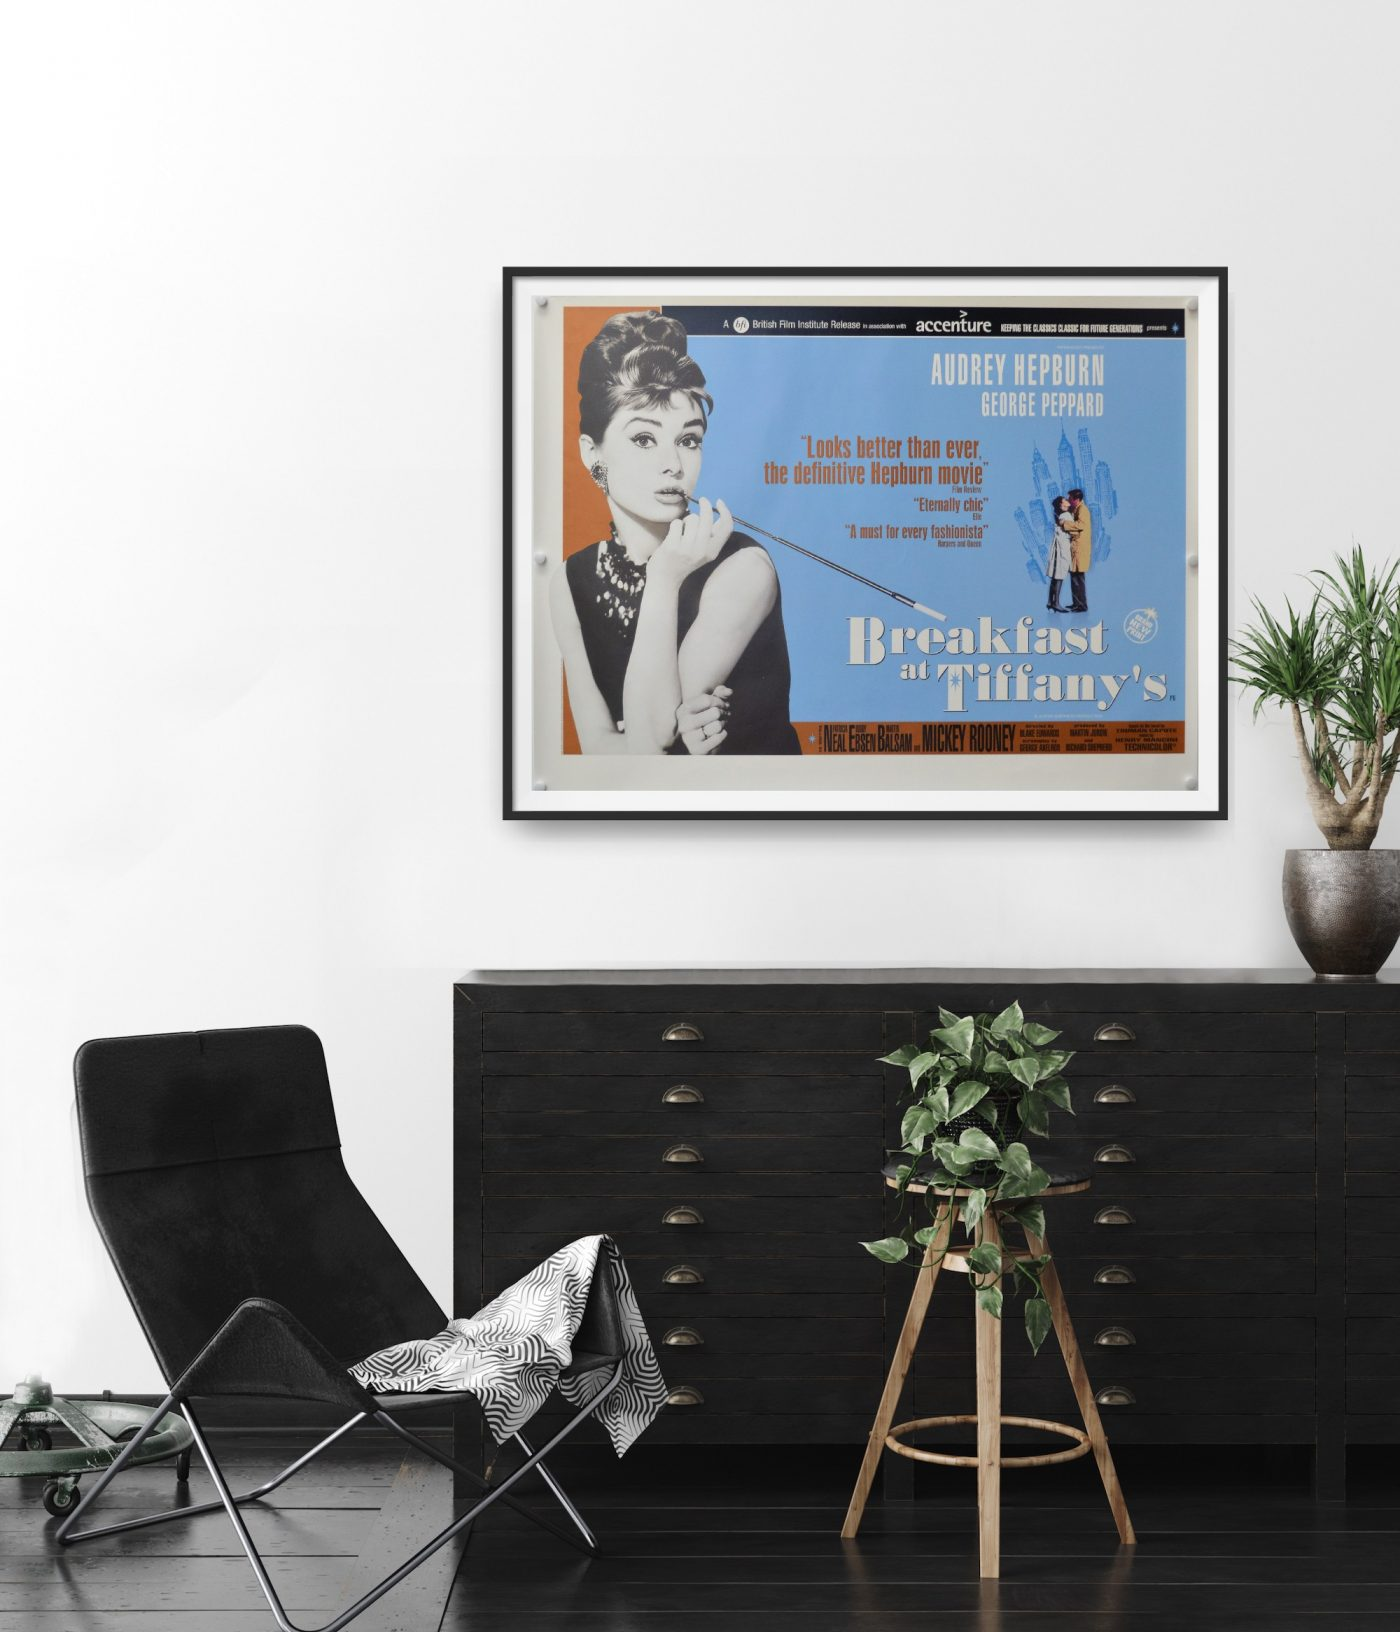 This is an original UK quad poster for a 2001 rerelease of Breakfast at Tiffany's. Audrey Hepburn features prominently in the image.